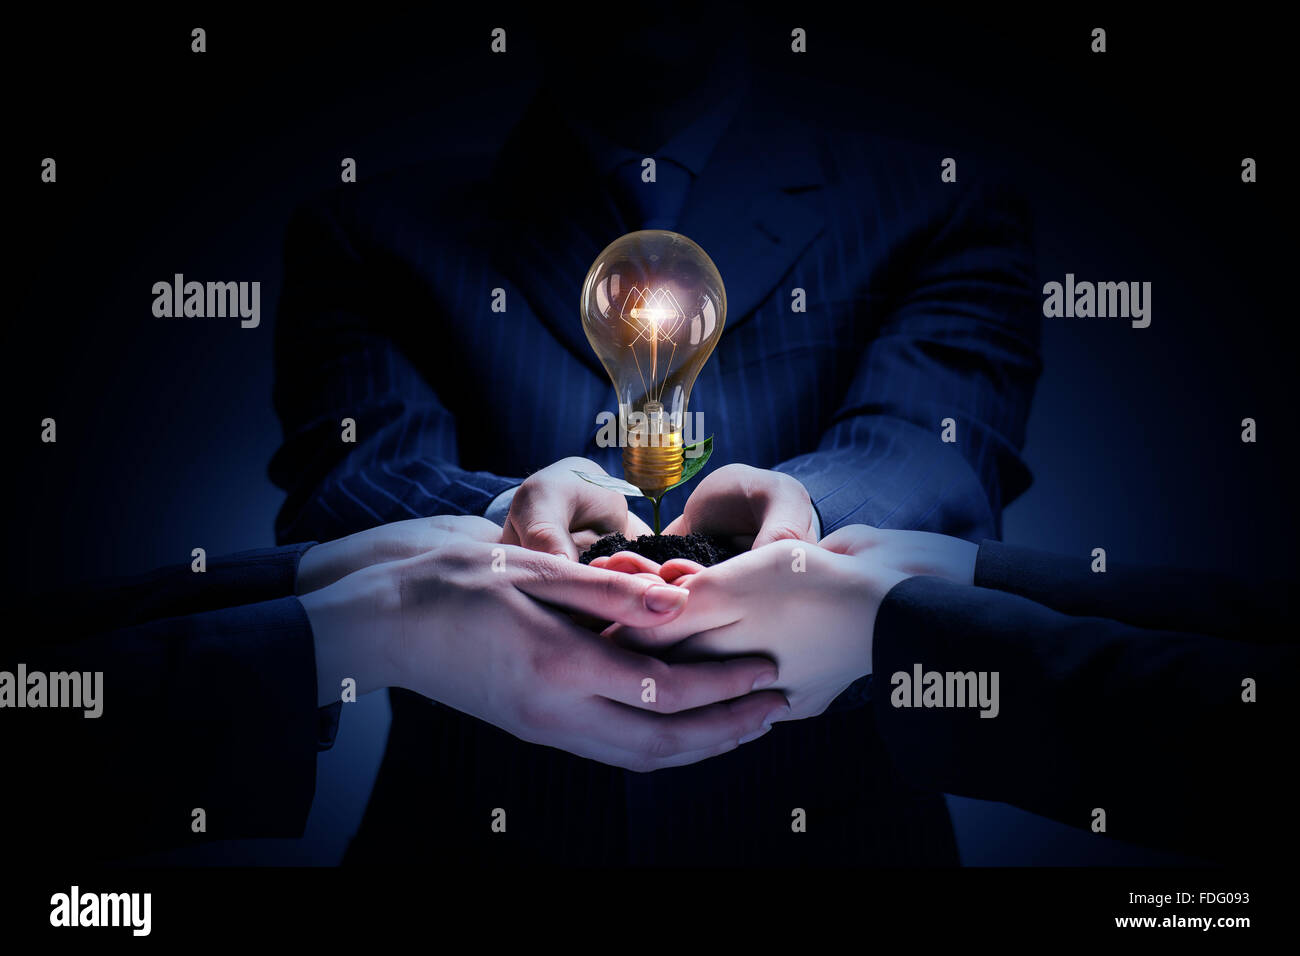 Brainstorming and teamwork concept with diverse business people holding light bulb in hands - Stock Image